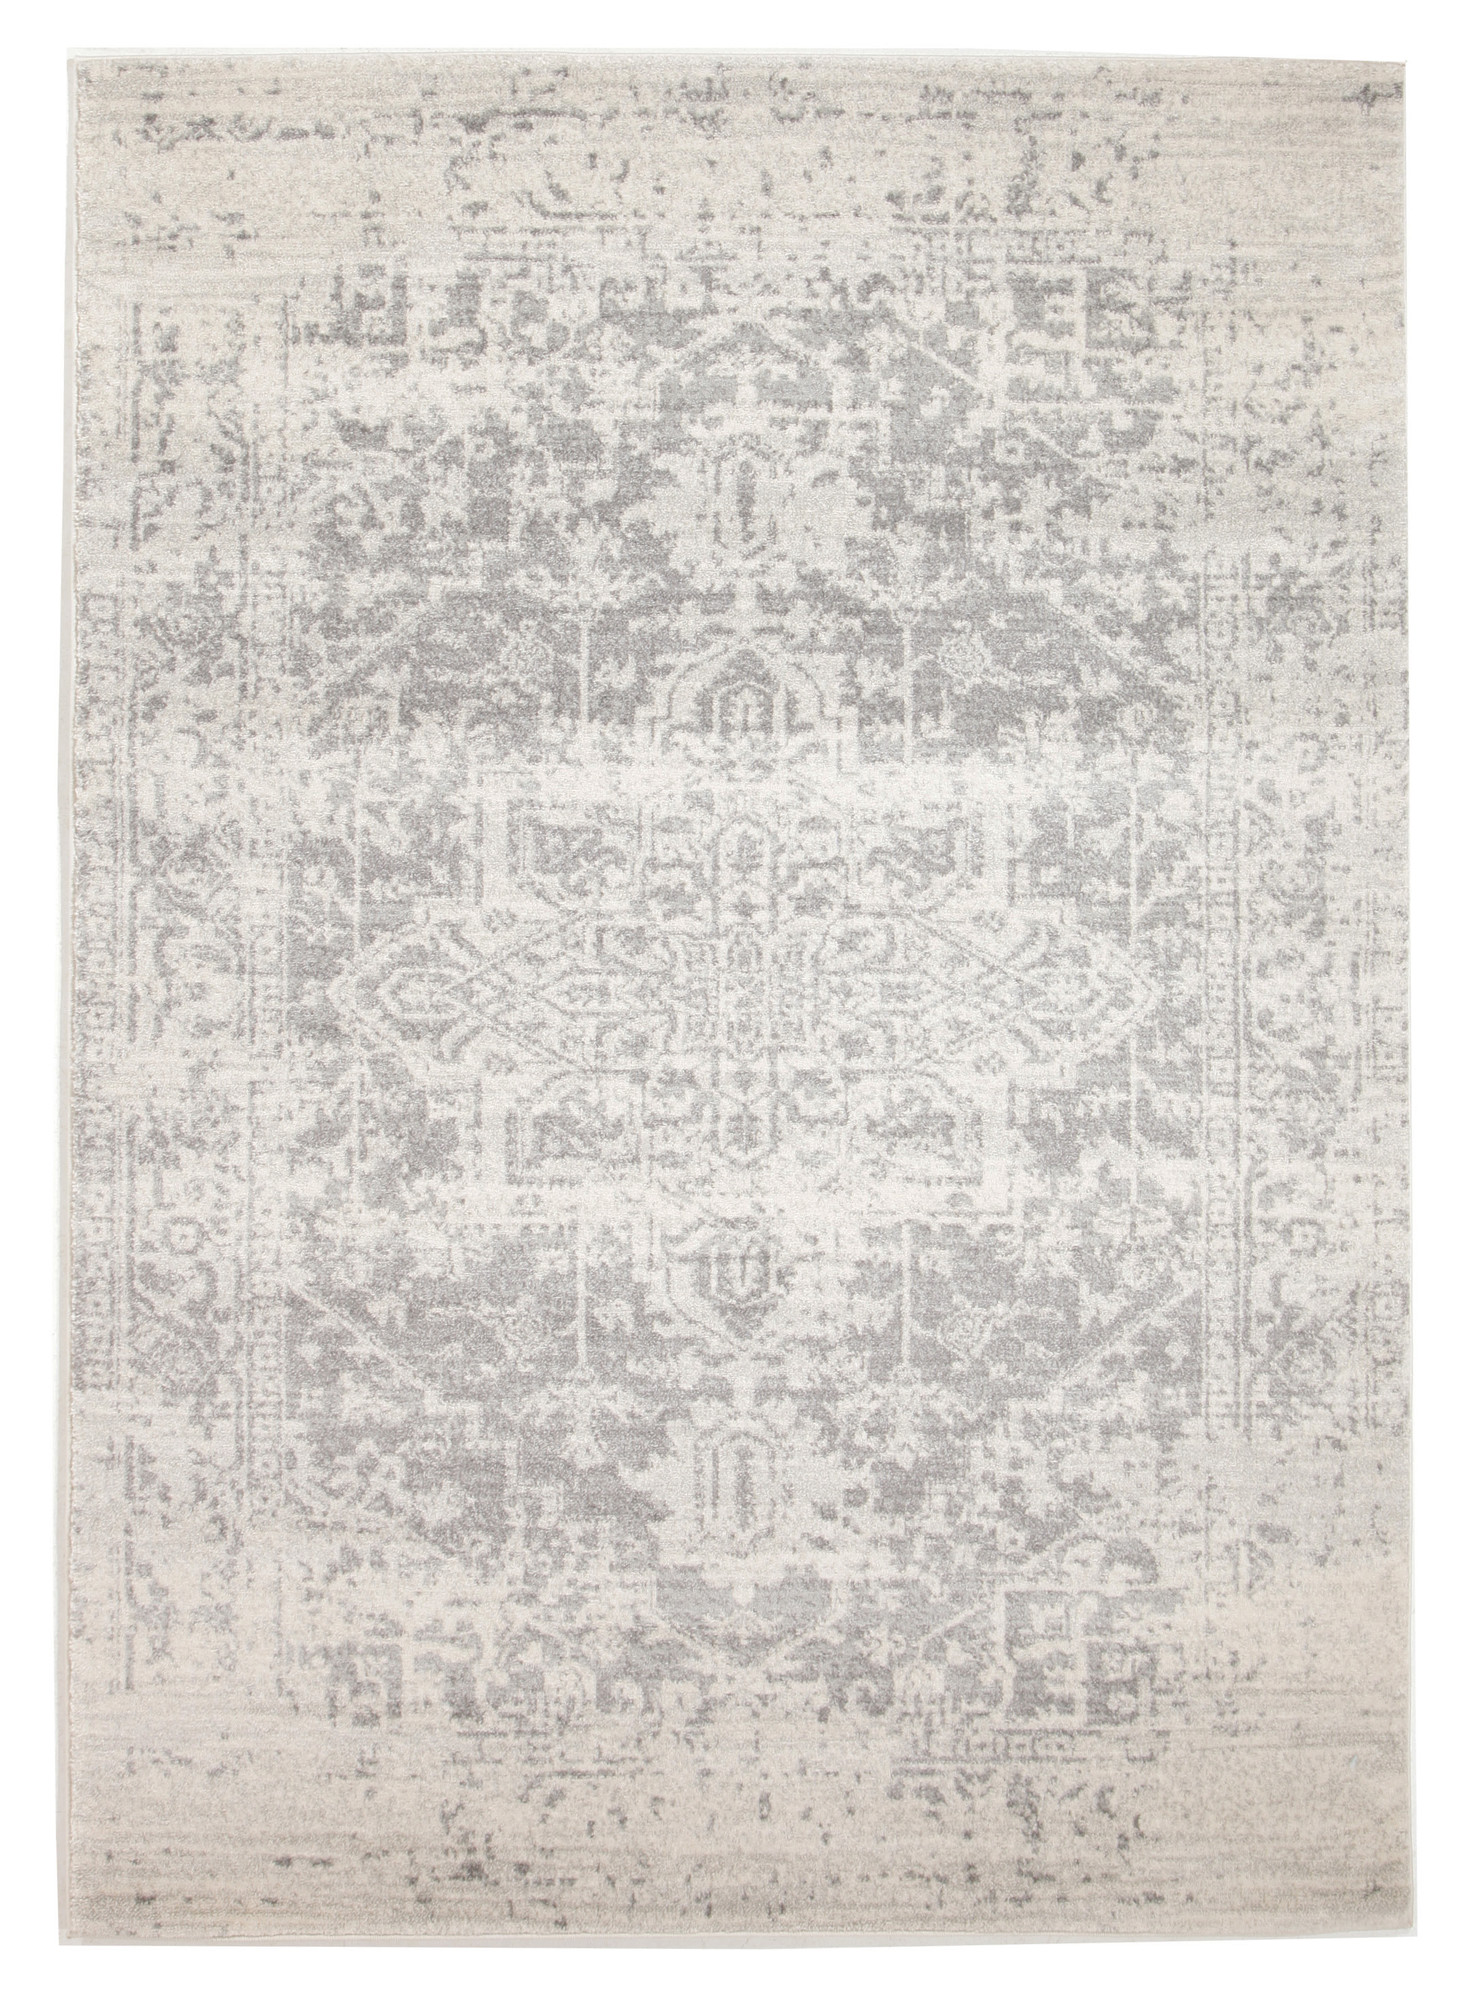 gb rug high art sanderum textiles en white ikea rugs gray cm and pile grey products